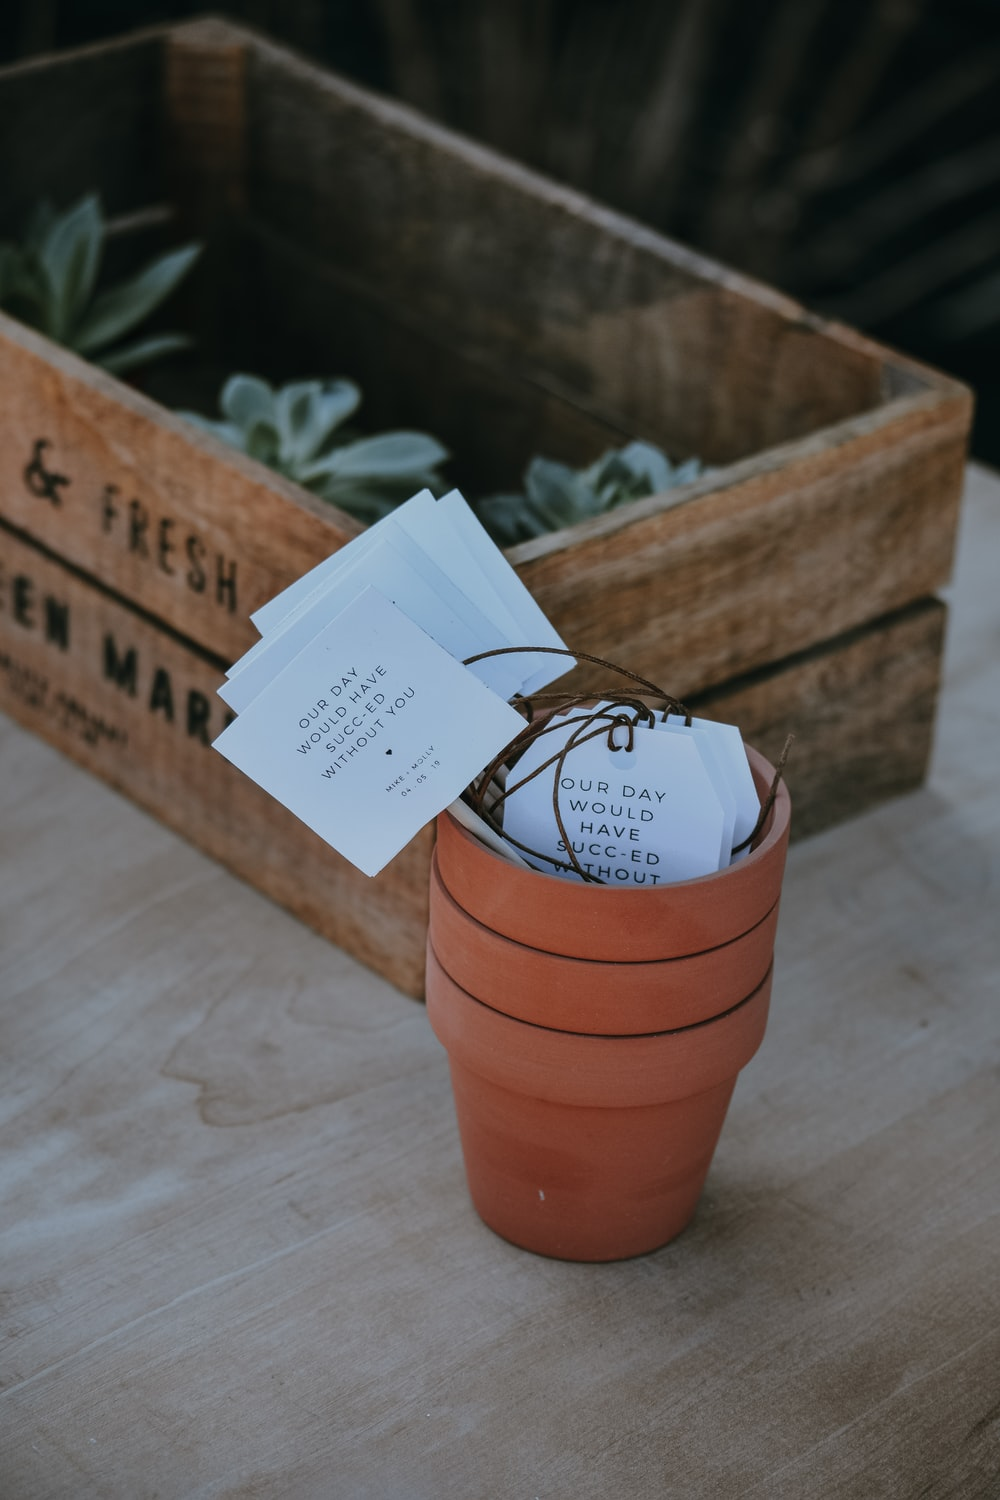 three piled brown clay pots near crate